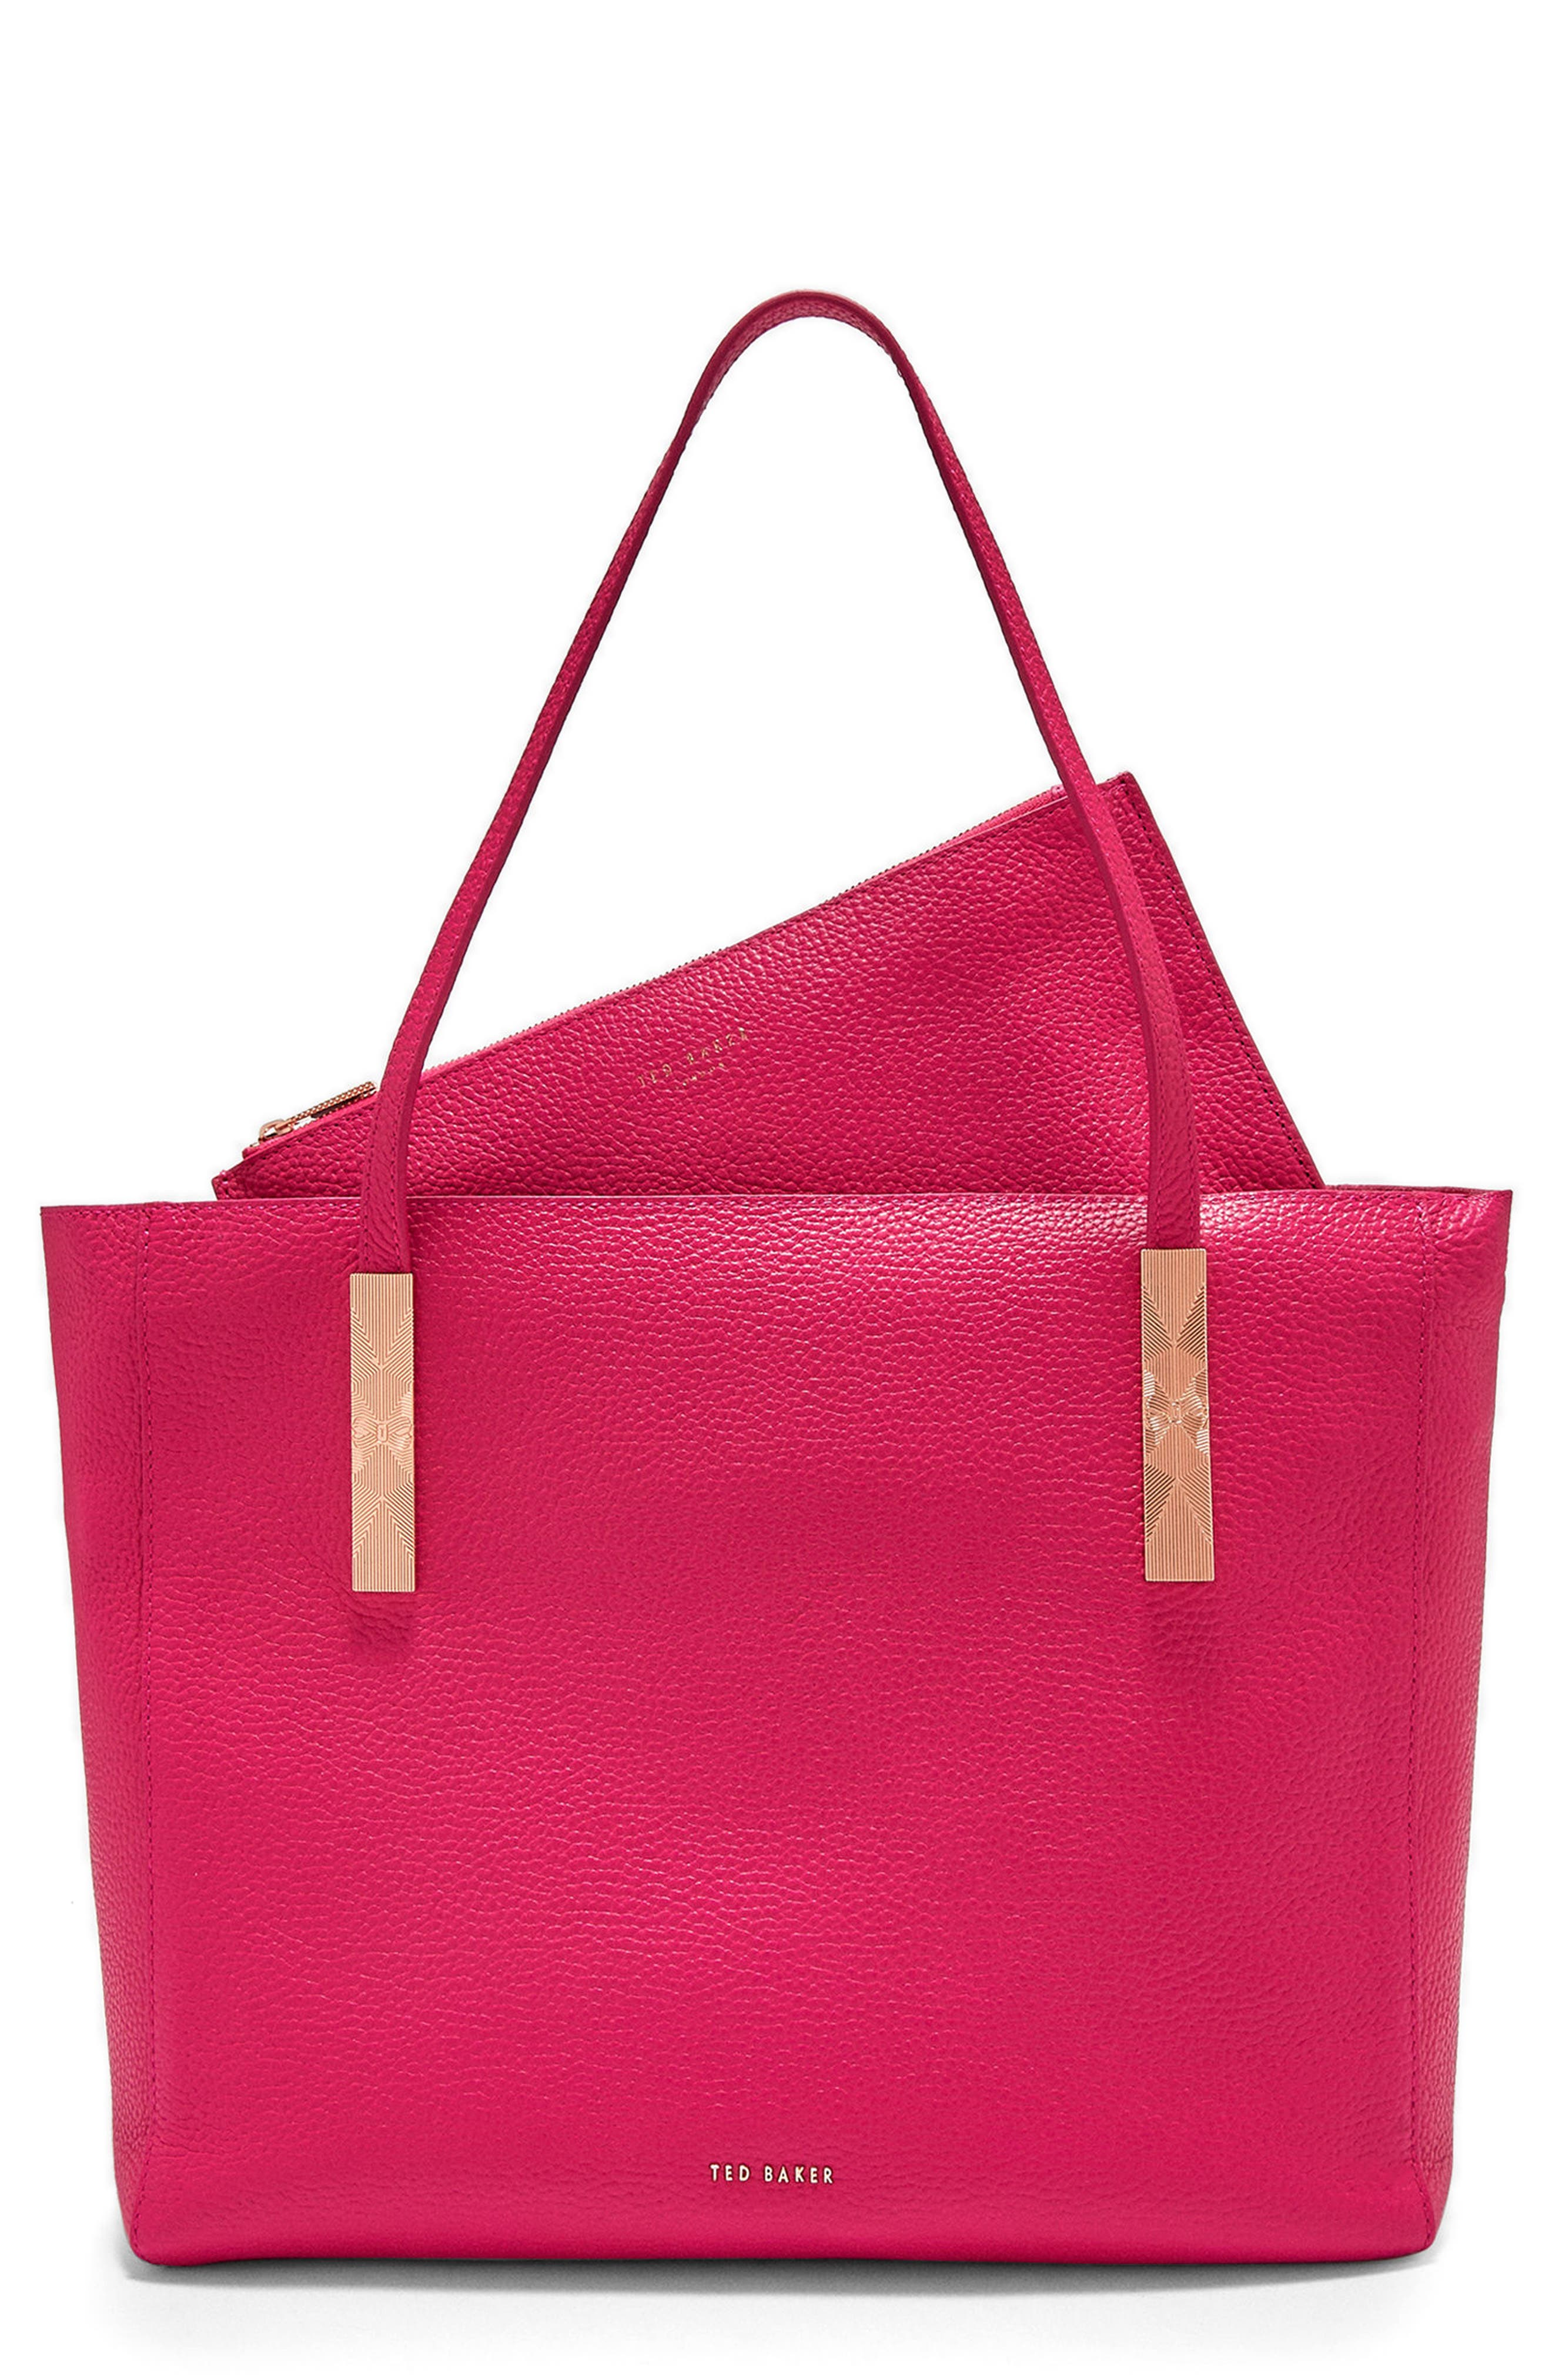 Ted Baker London Pebbled Leather Tote